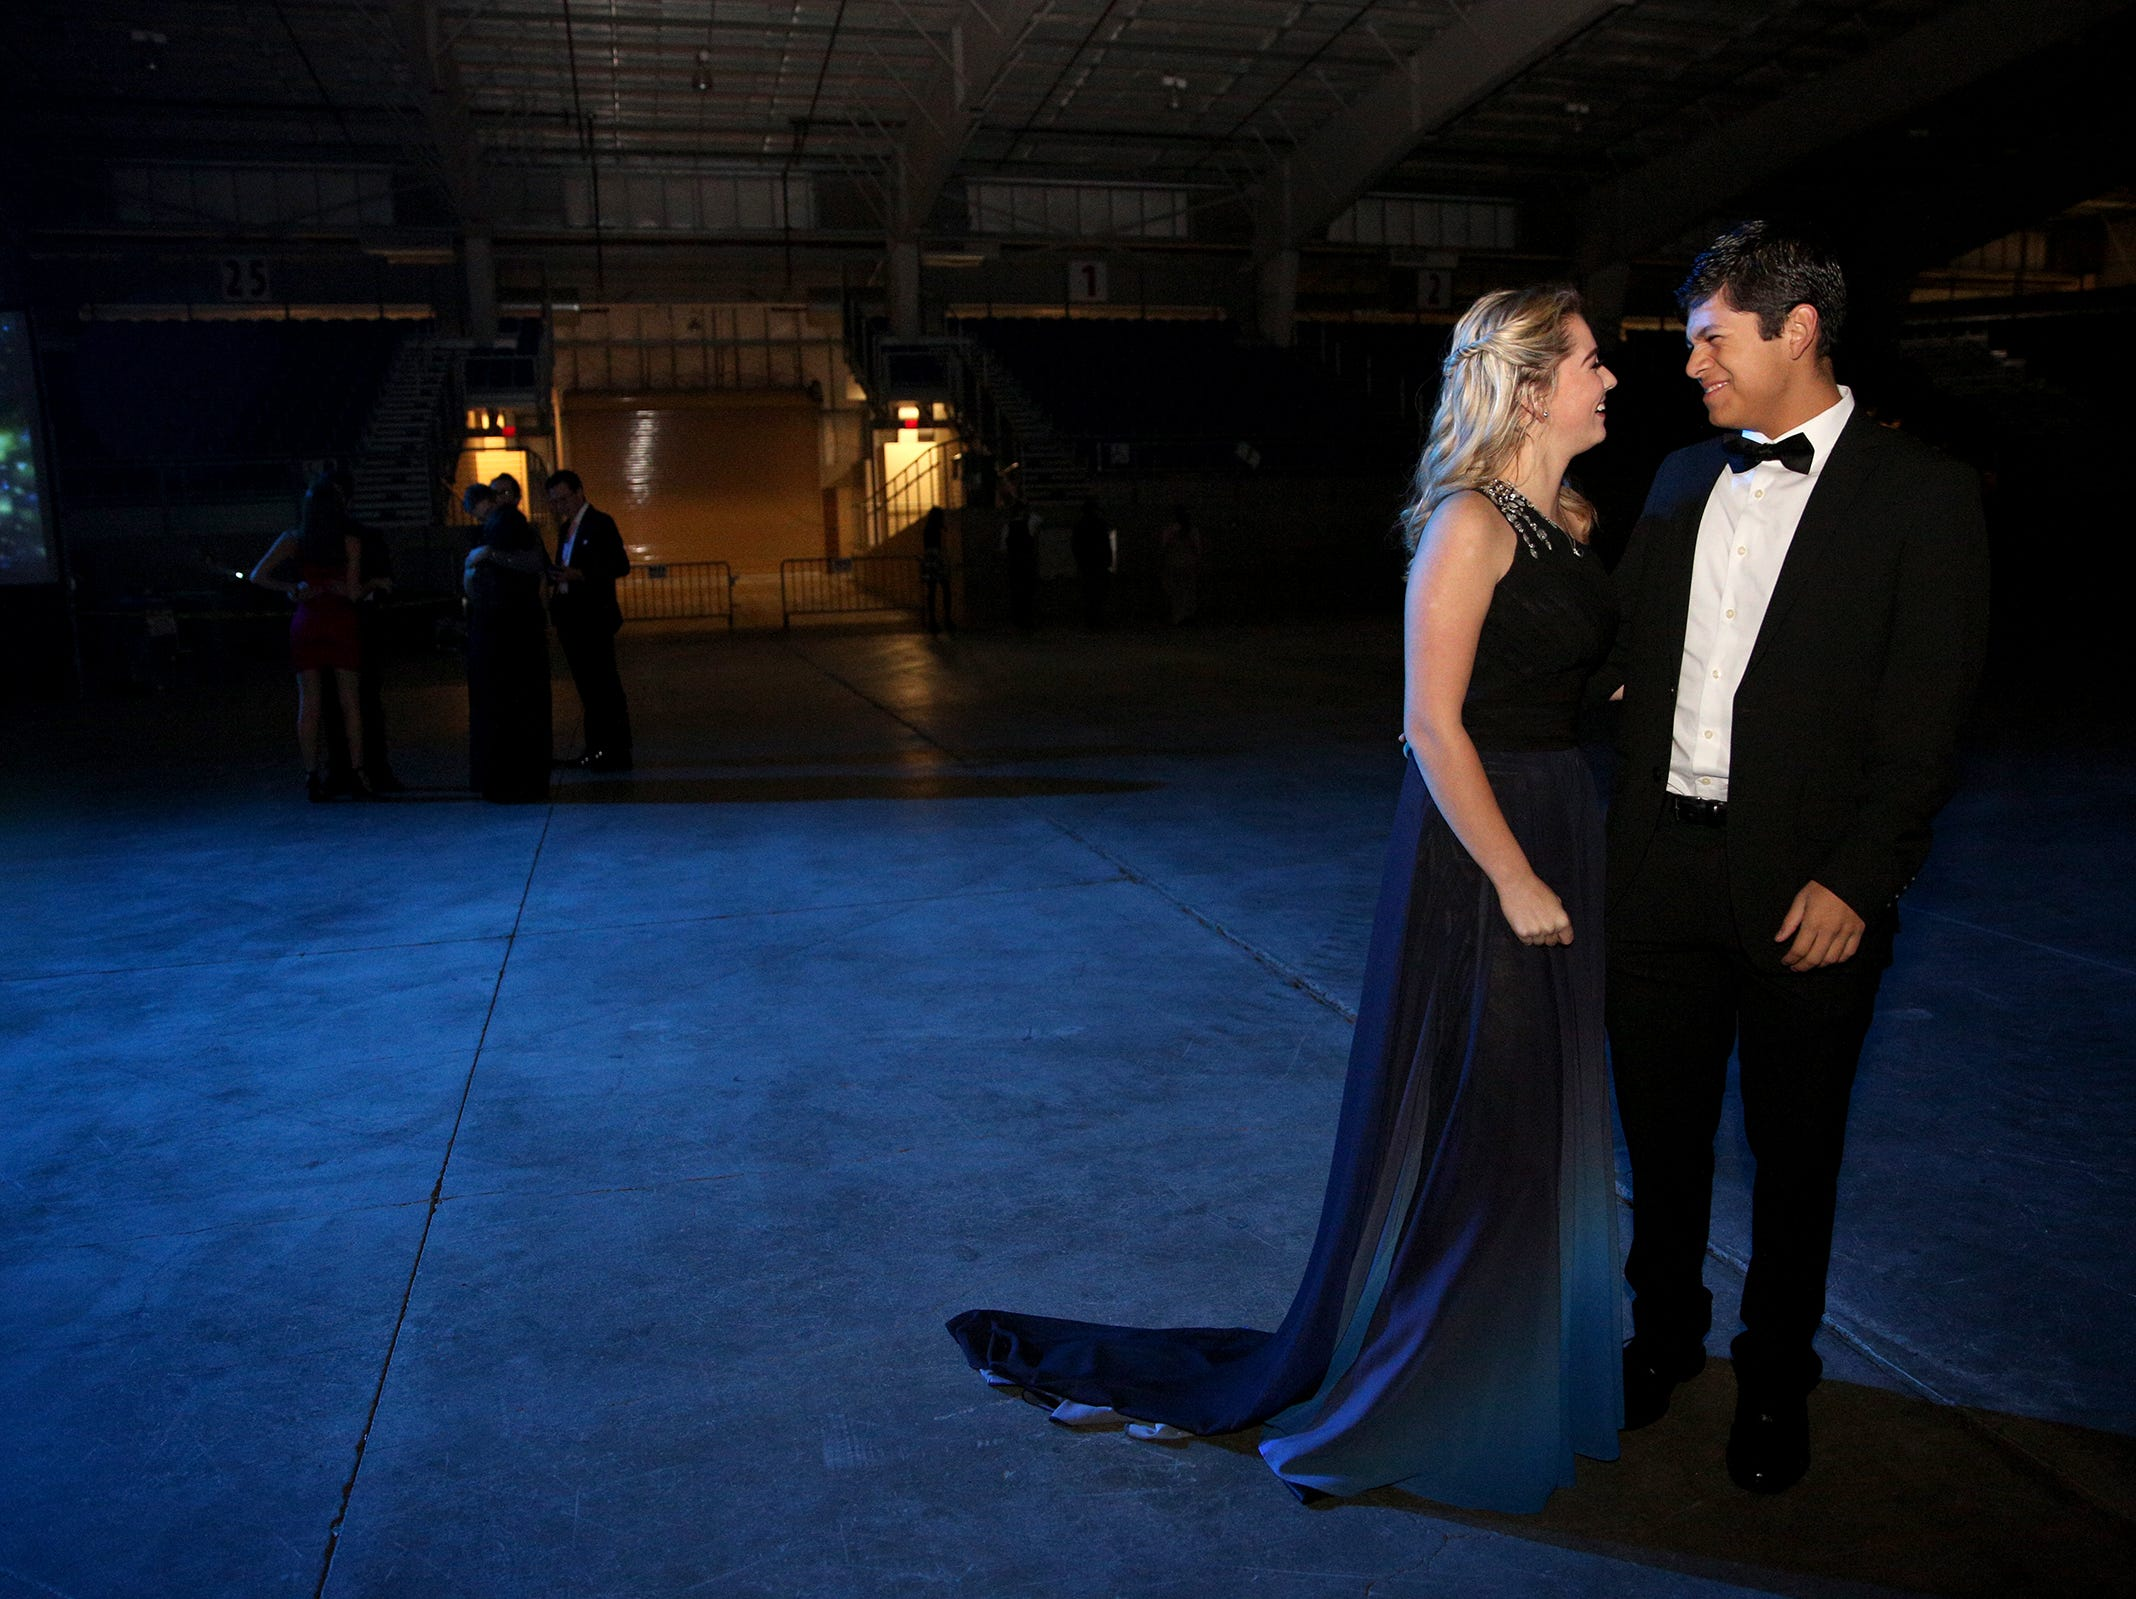 West Salem High School sophomores Jaden Lewis and Jonathan Duarte before the SnoBall at the Oregon State Fairgrounds Pavilion in Salem on Saturday, Dec. 1, 2018. The annual dance is now in its 65th year.